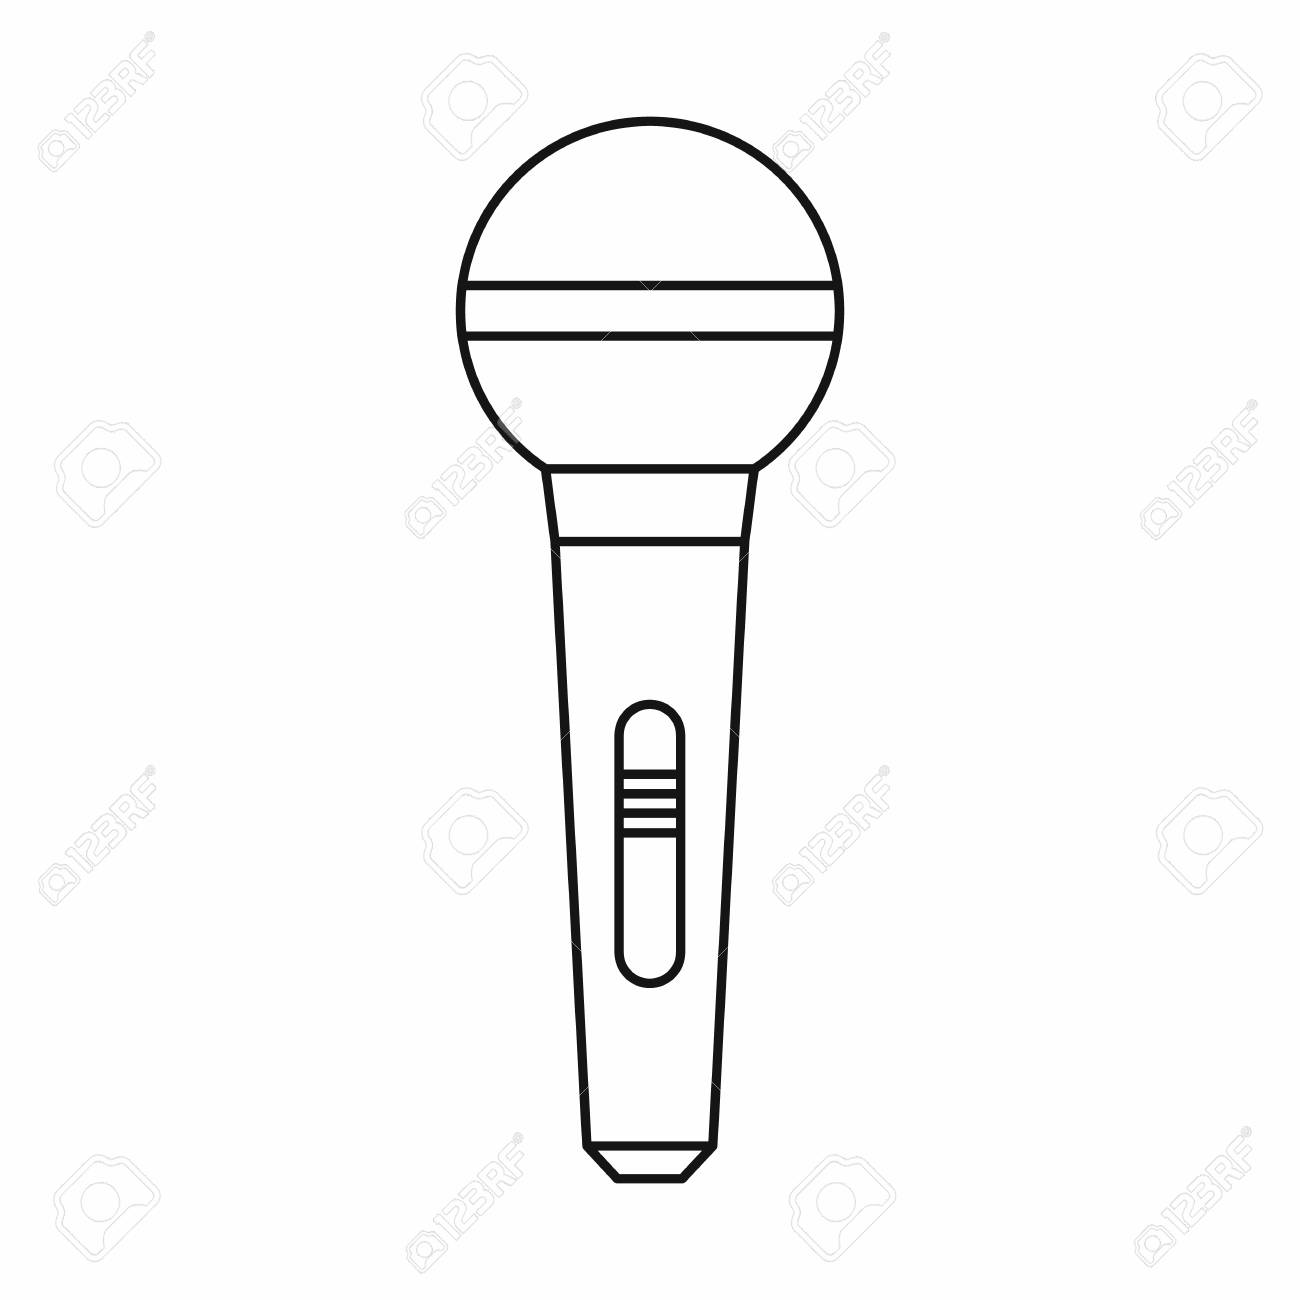 Microphone icon in outline style isolated on white background.